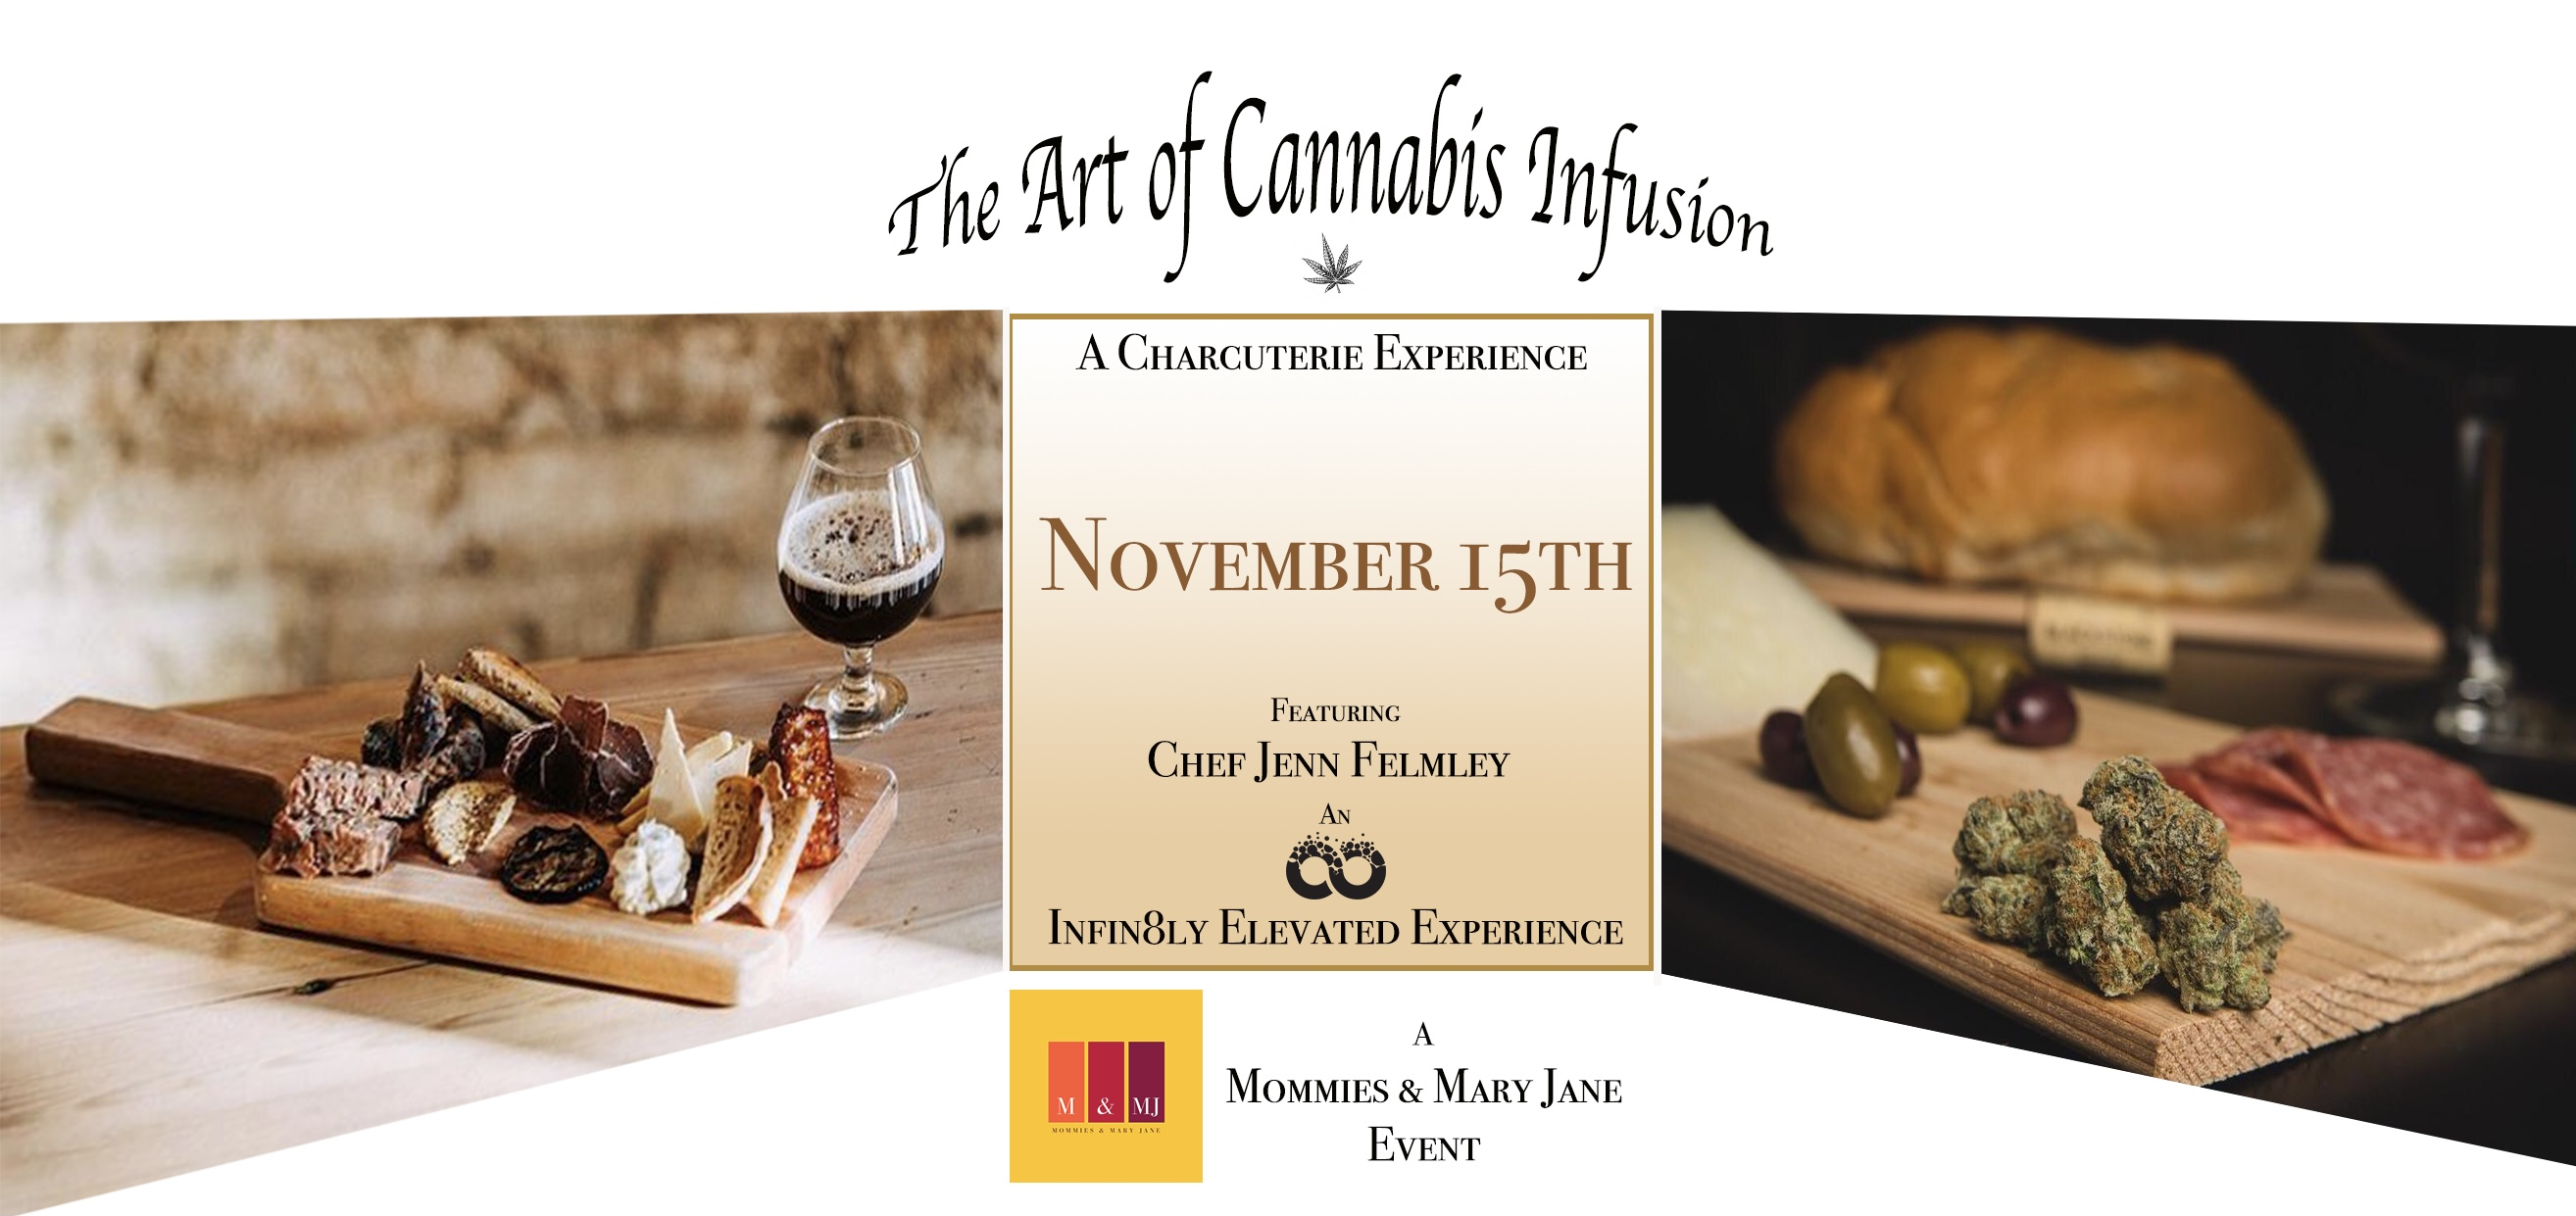 The Art of Cannabis Infusions: A Charcuterie Experience